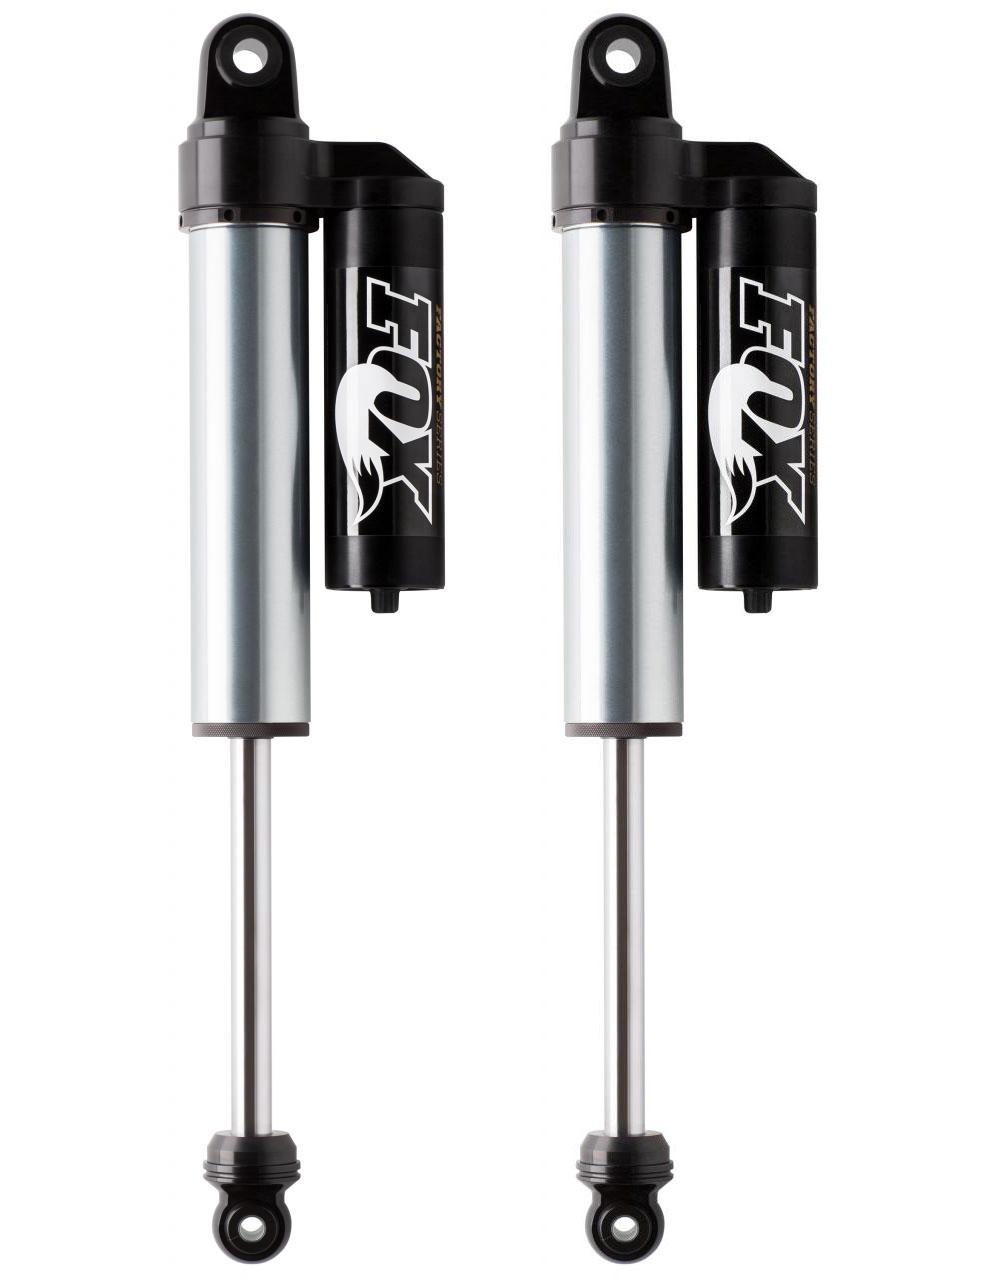 FOX FACTORY RACE SERIES 2.5 RESERVOIR SHOCK (PAIR) 2003-2019